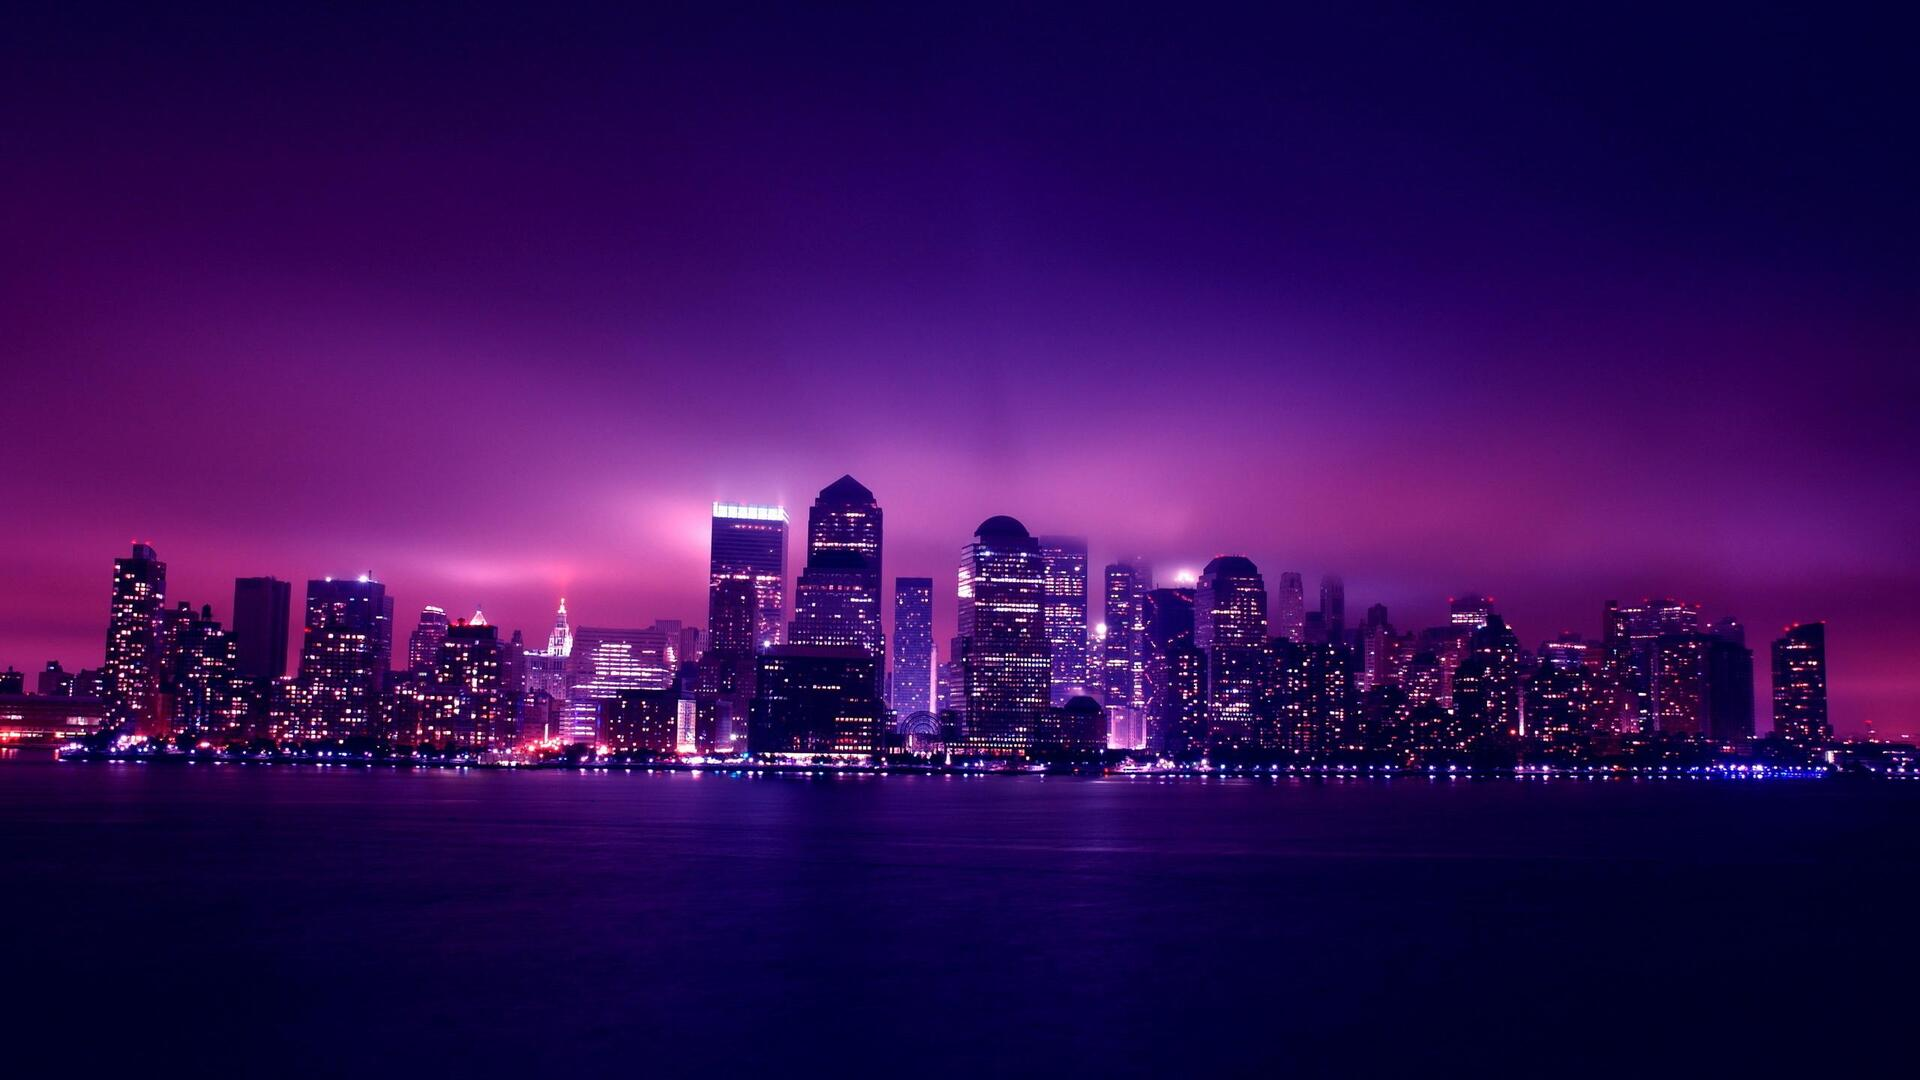 Download vibe aesthetic wallpaper 4k and enjoy it on your iphone, ipad, and ipod touch. 1920x1080 Aesthetic City Night Lights Laptop Full HD 1080P ...